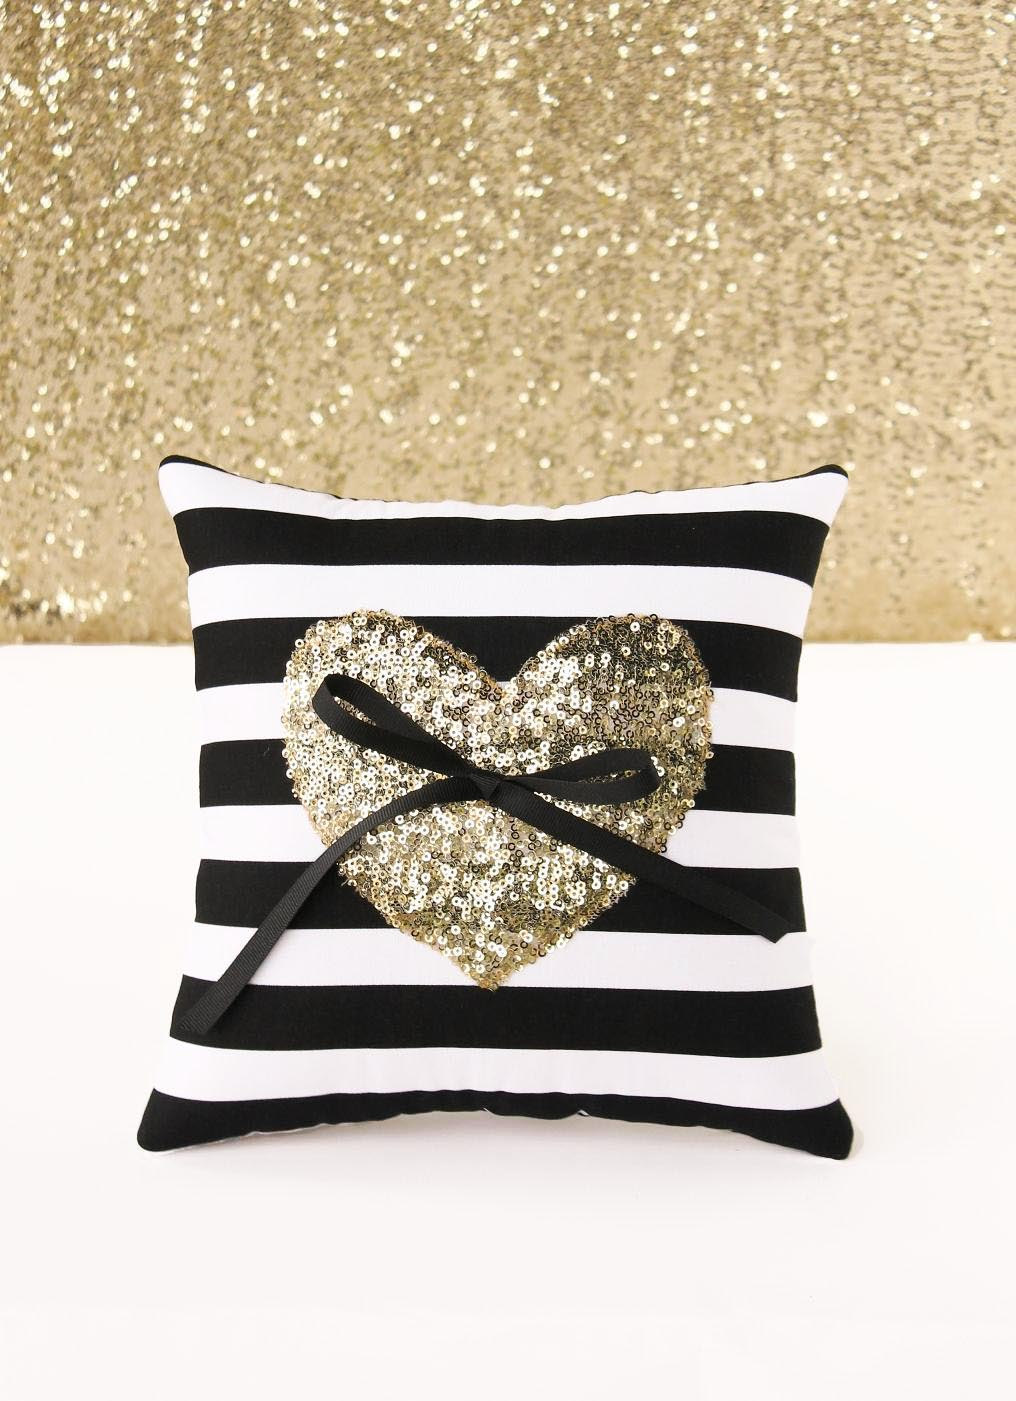 bling wedding ring pillow by stitchesandsnow